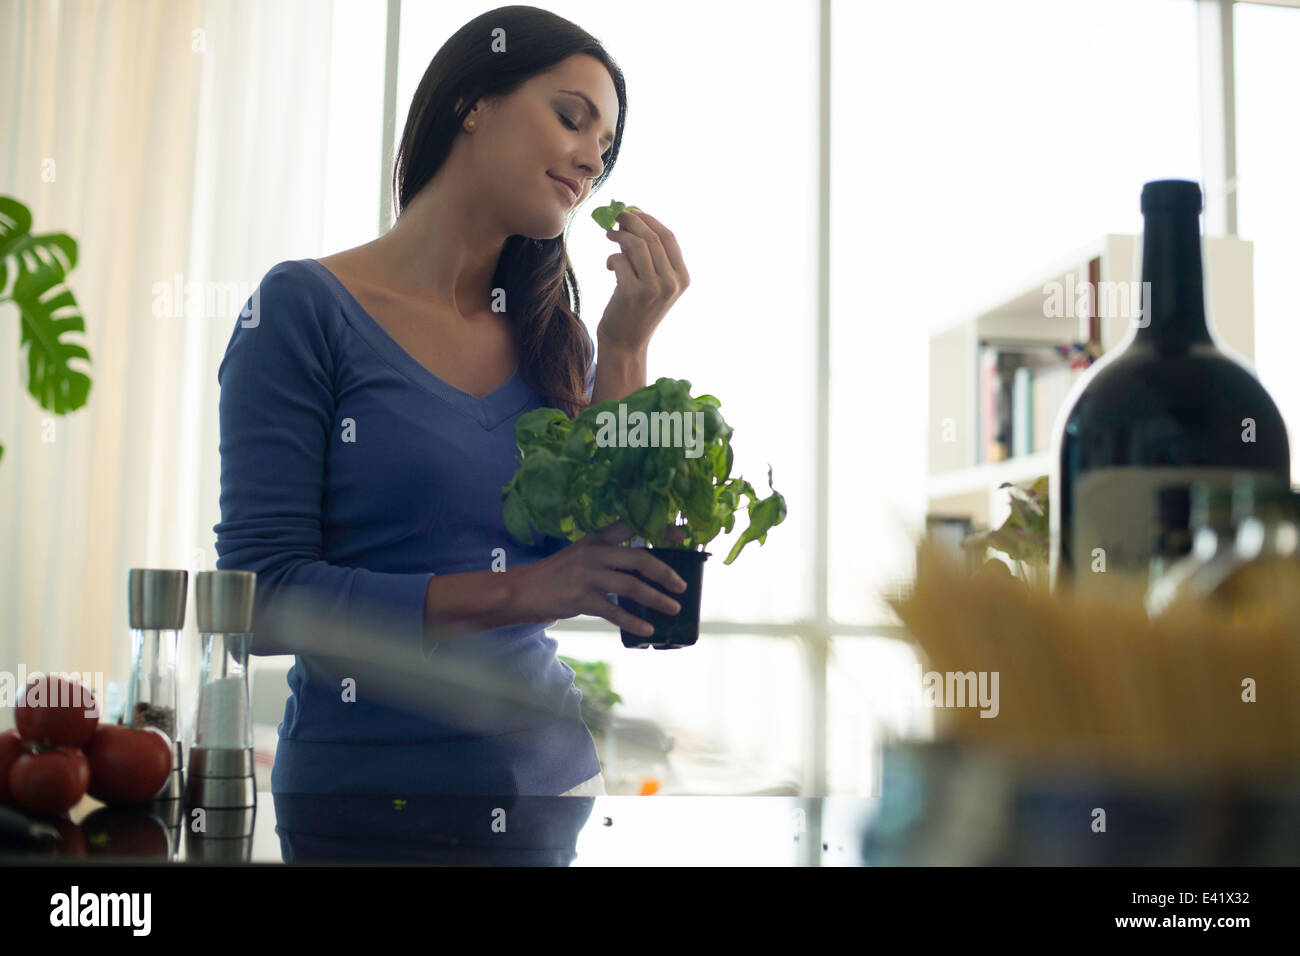 Young woman smelling basil plant in kitchen - Stock Image